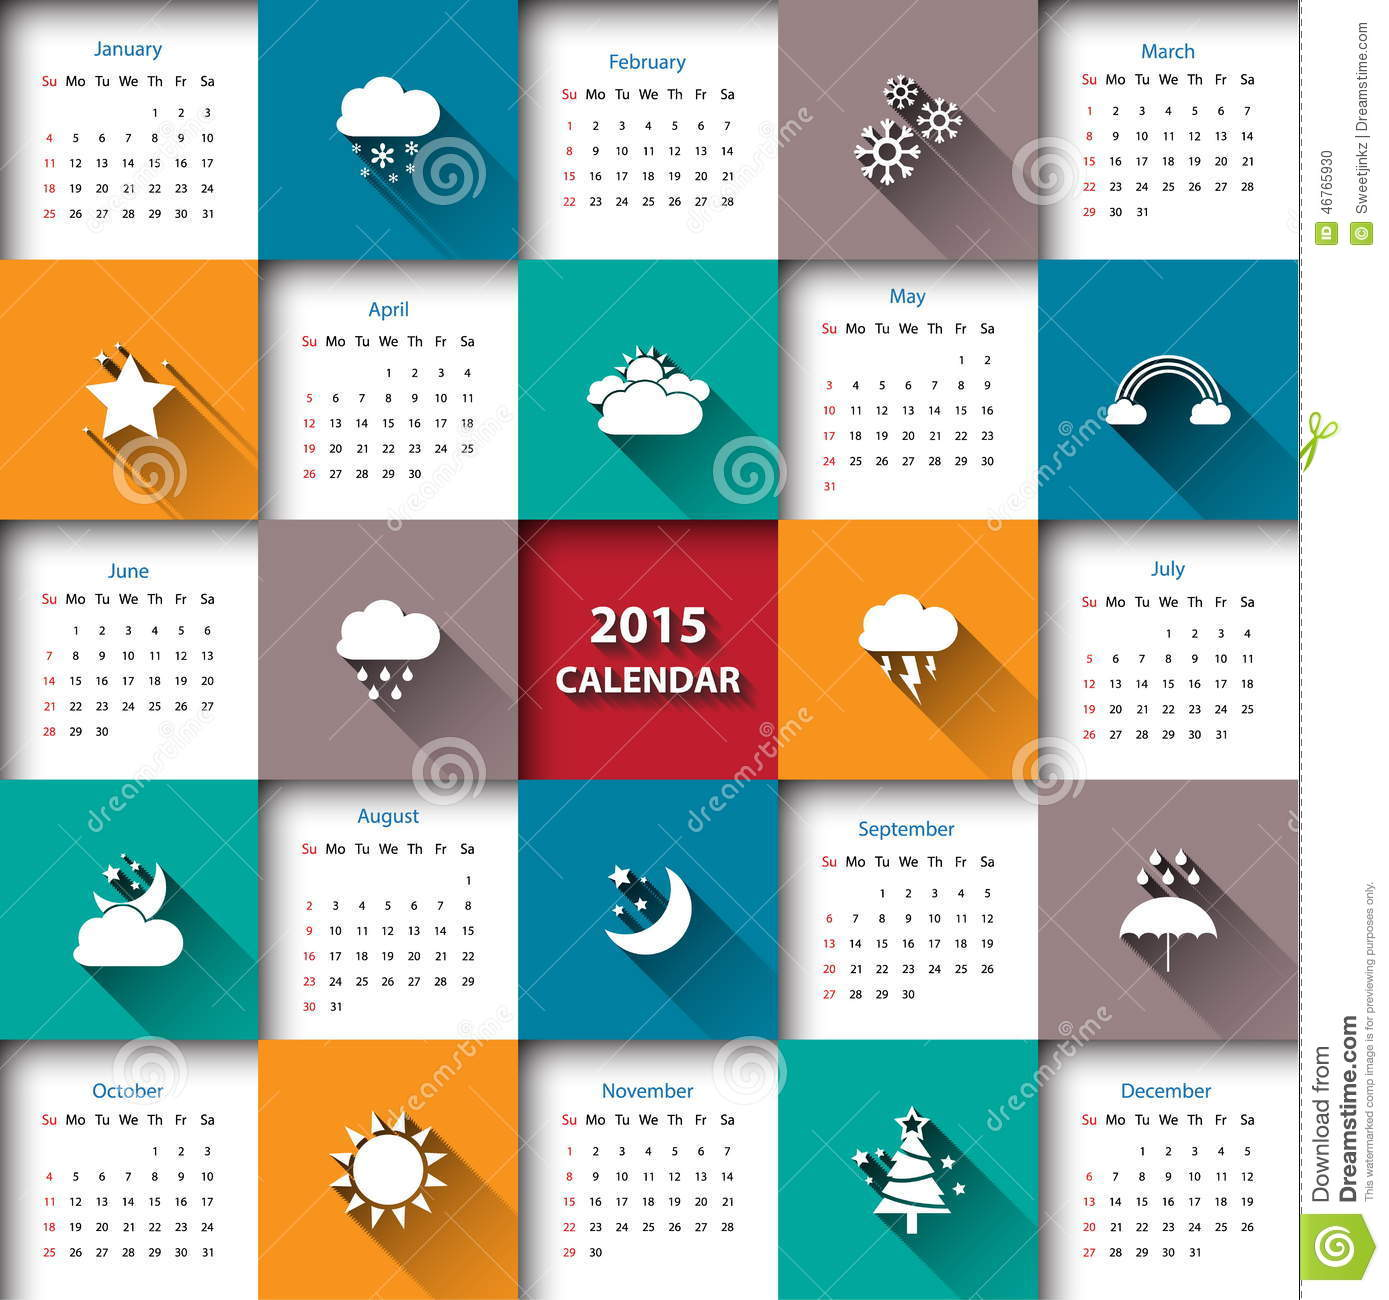 2015 Calendar Template With Weather Icon.Vector/illustration. Stock ...